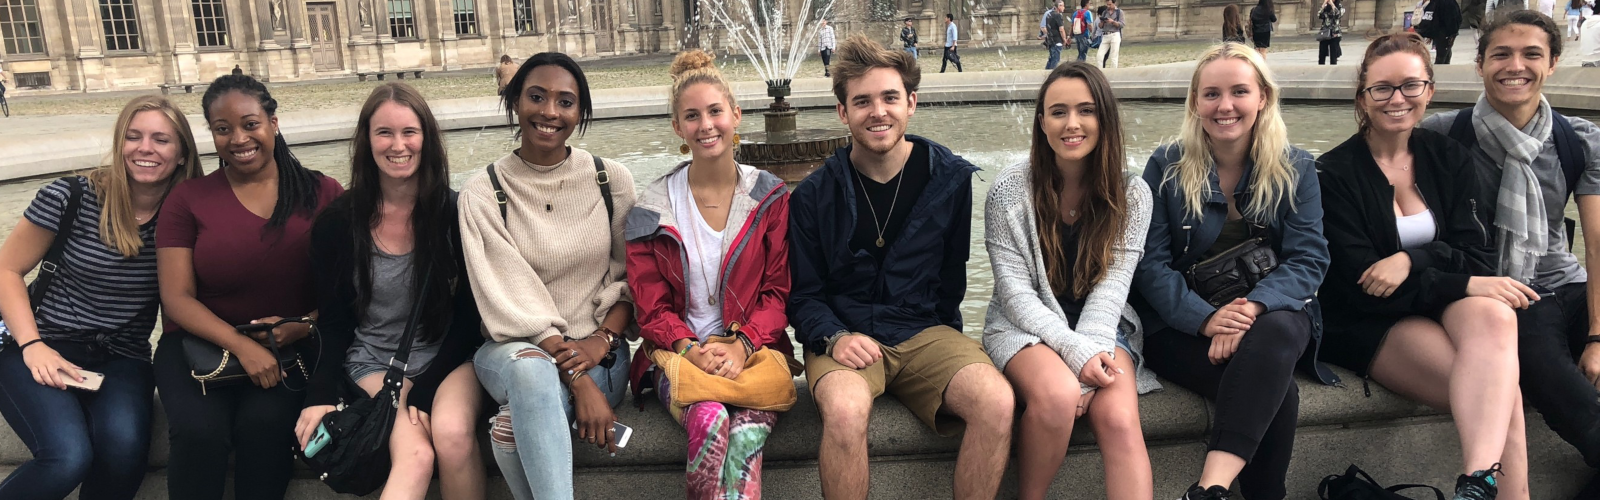 Strasbourg study abroad group in 2018